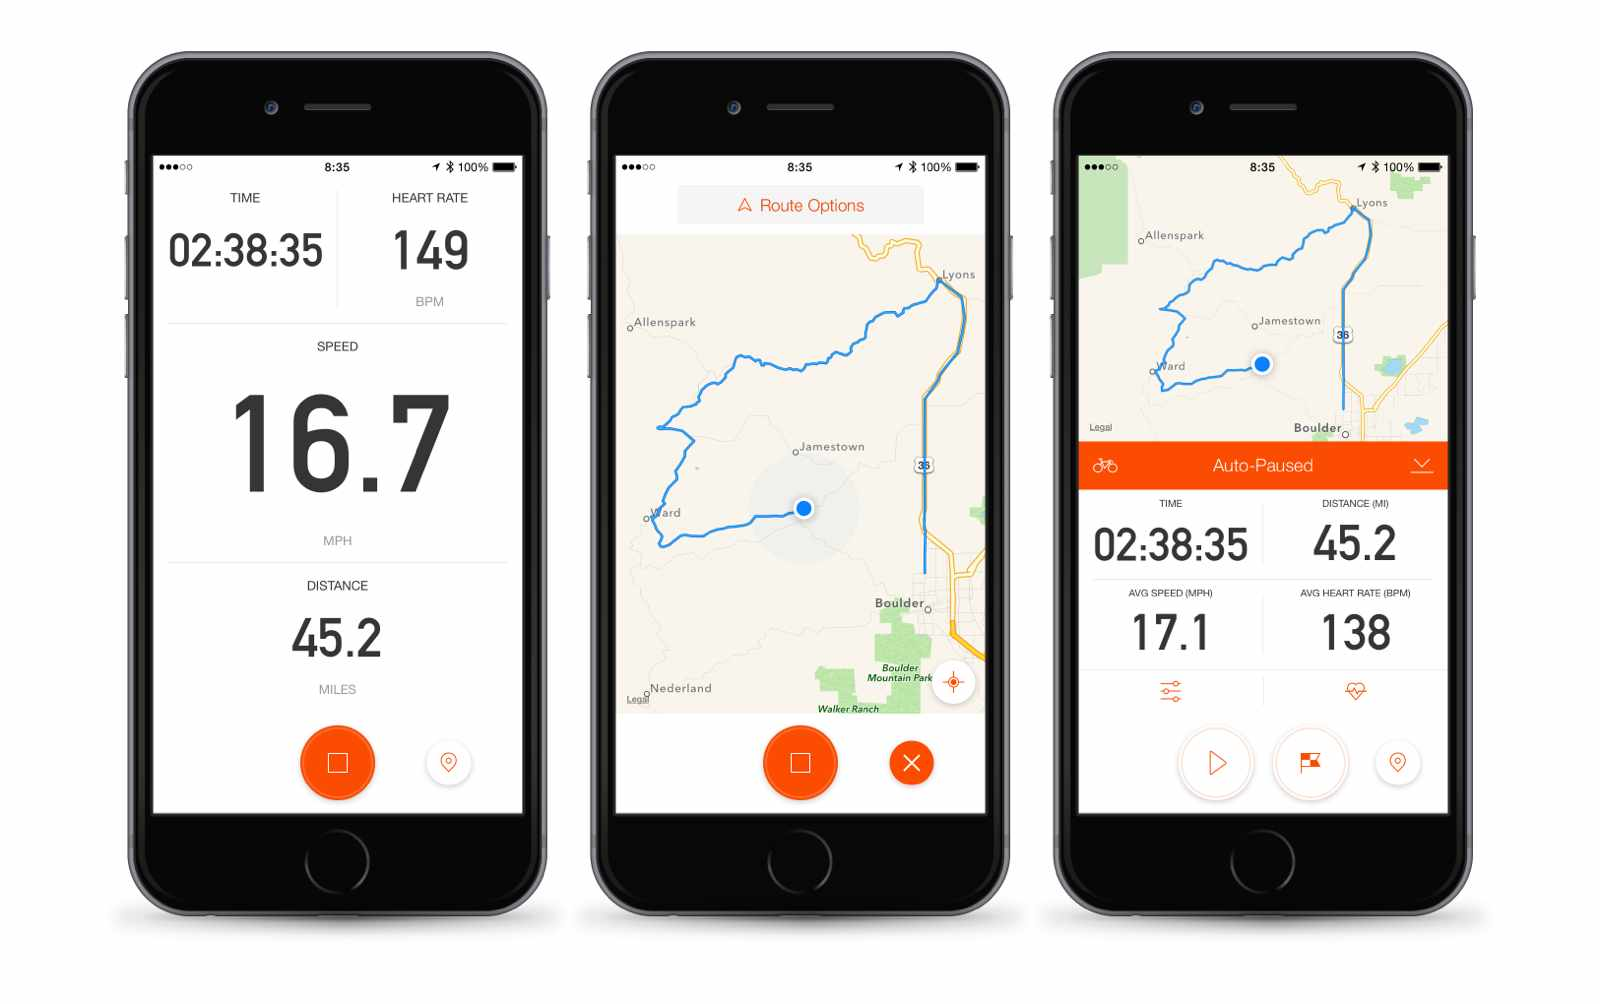 Strava's latest update turns a smartphone into a Strava cycling computer